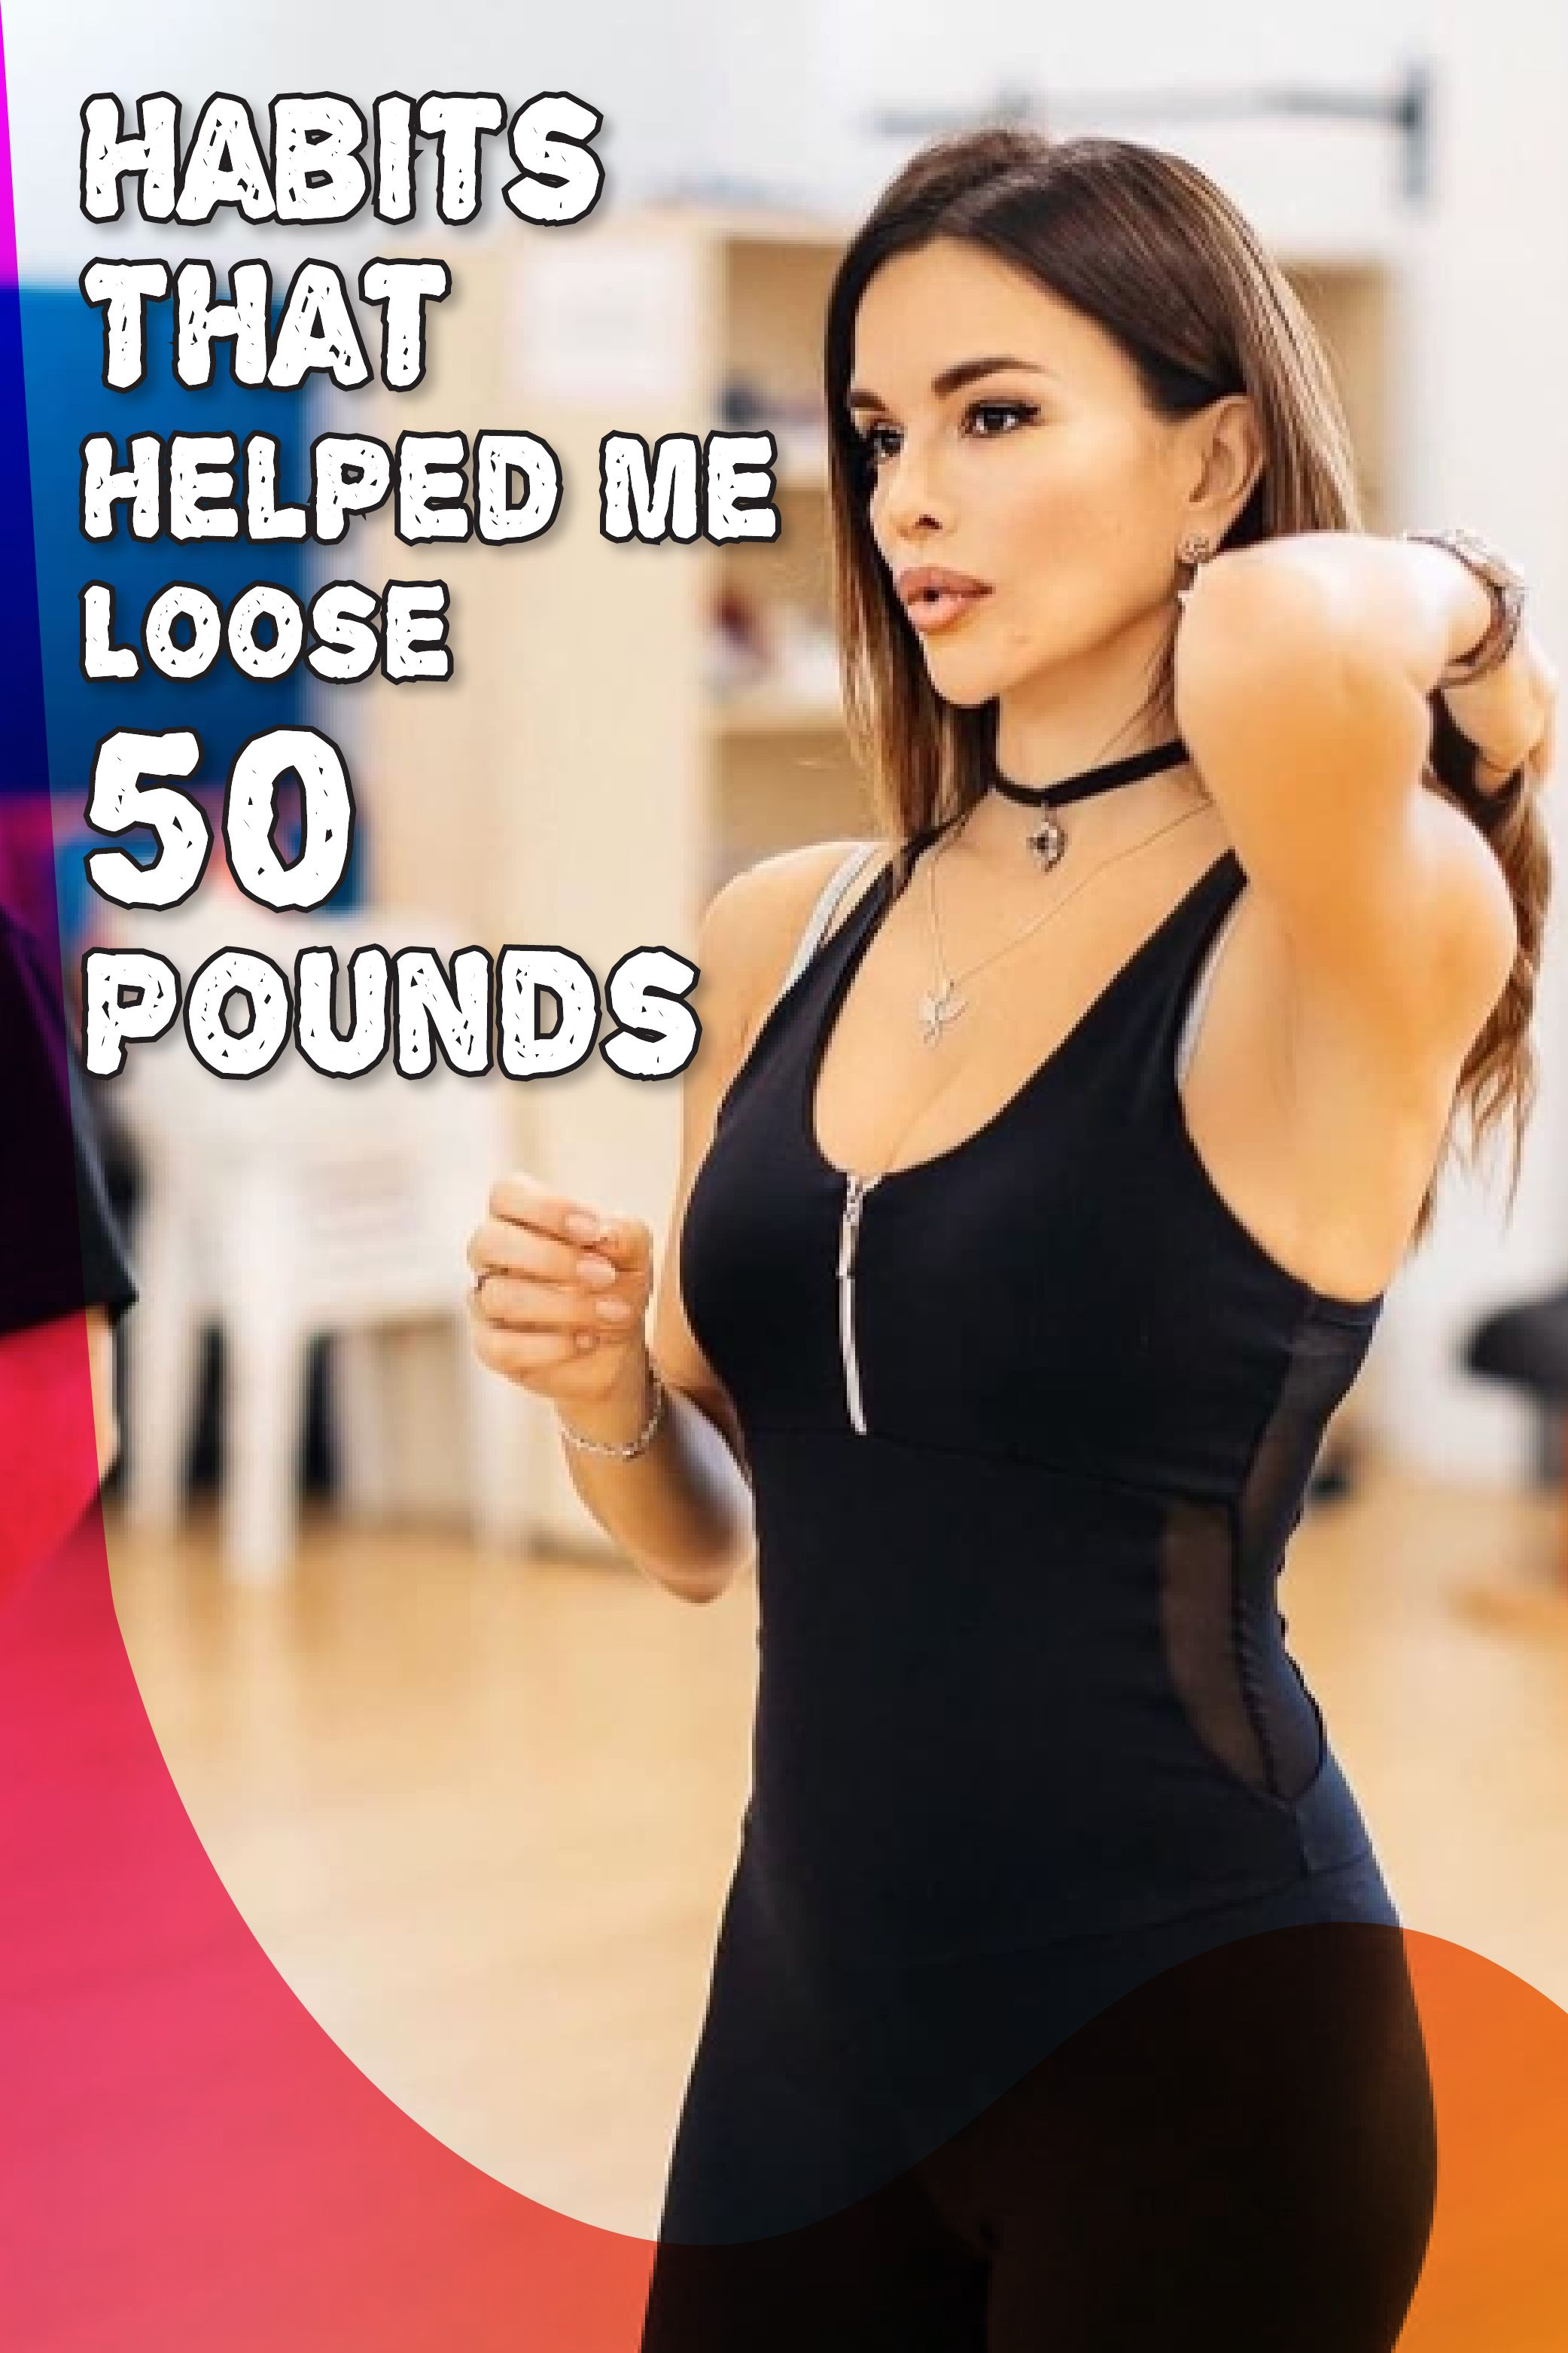 Pin on Lose Weight 50 ibs